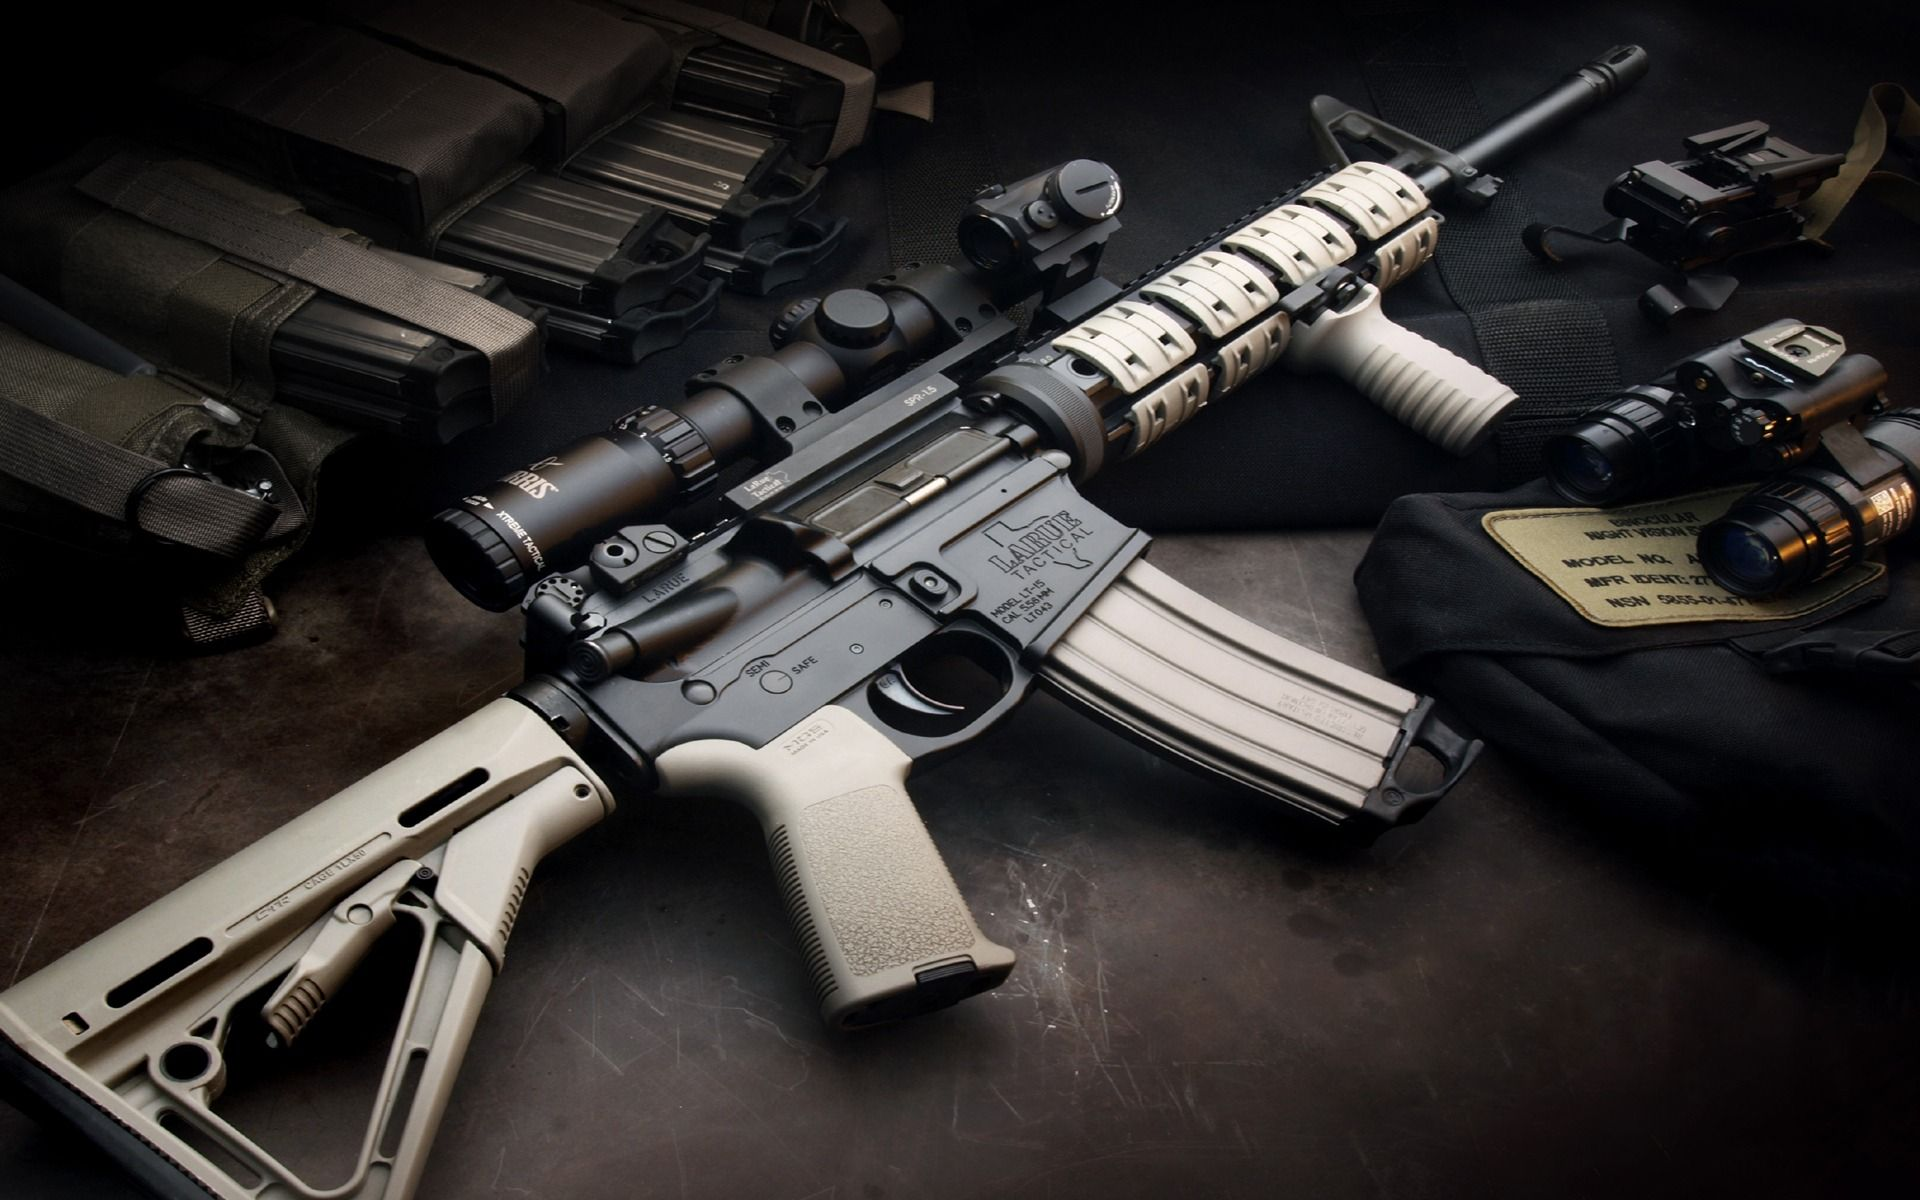 108 Best Images About Weapons Wallpapers On Pinterest: Gun Wallpapers - Full HD Wallpaper Search